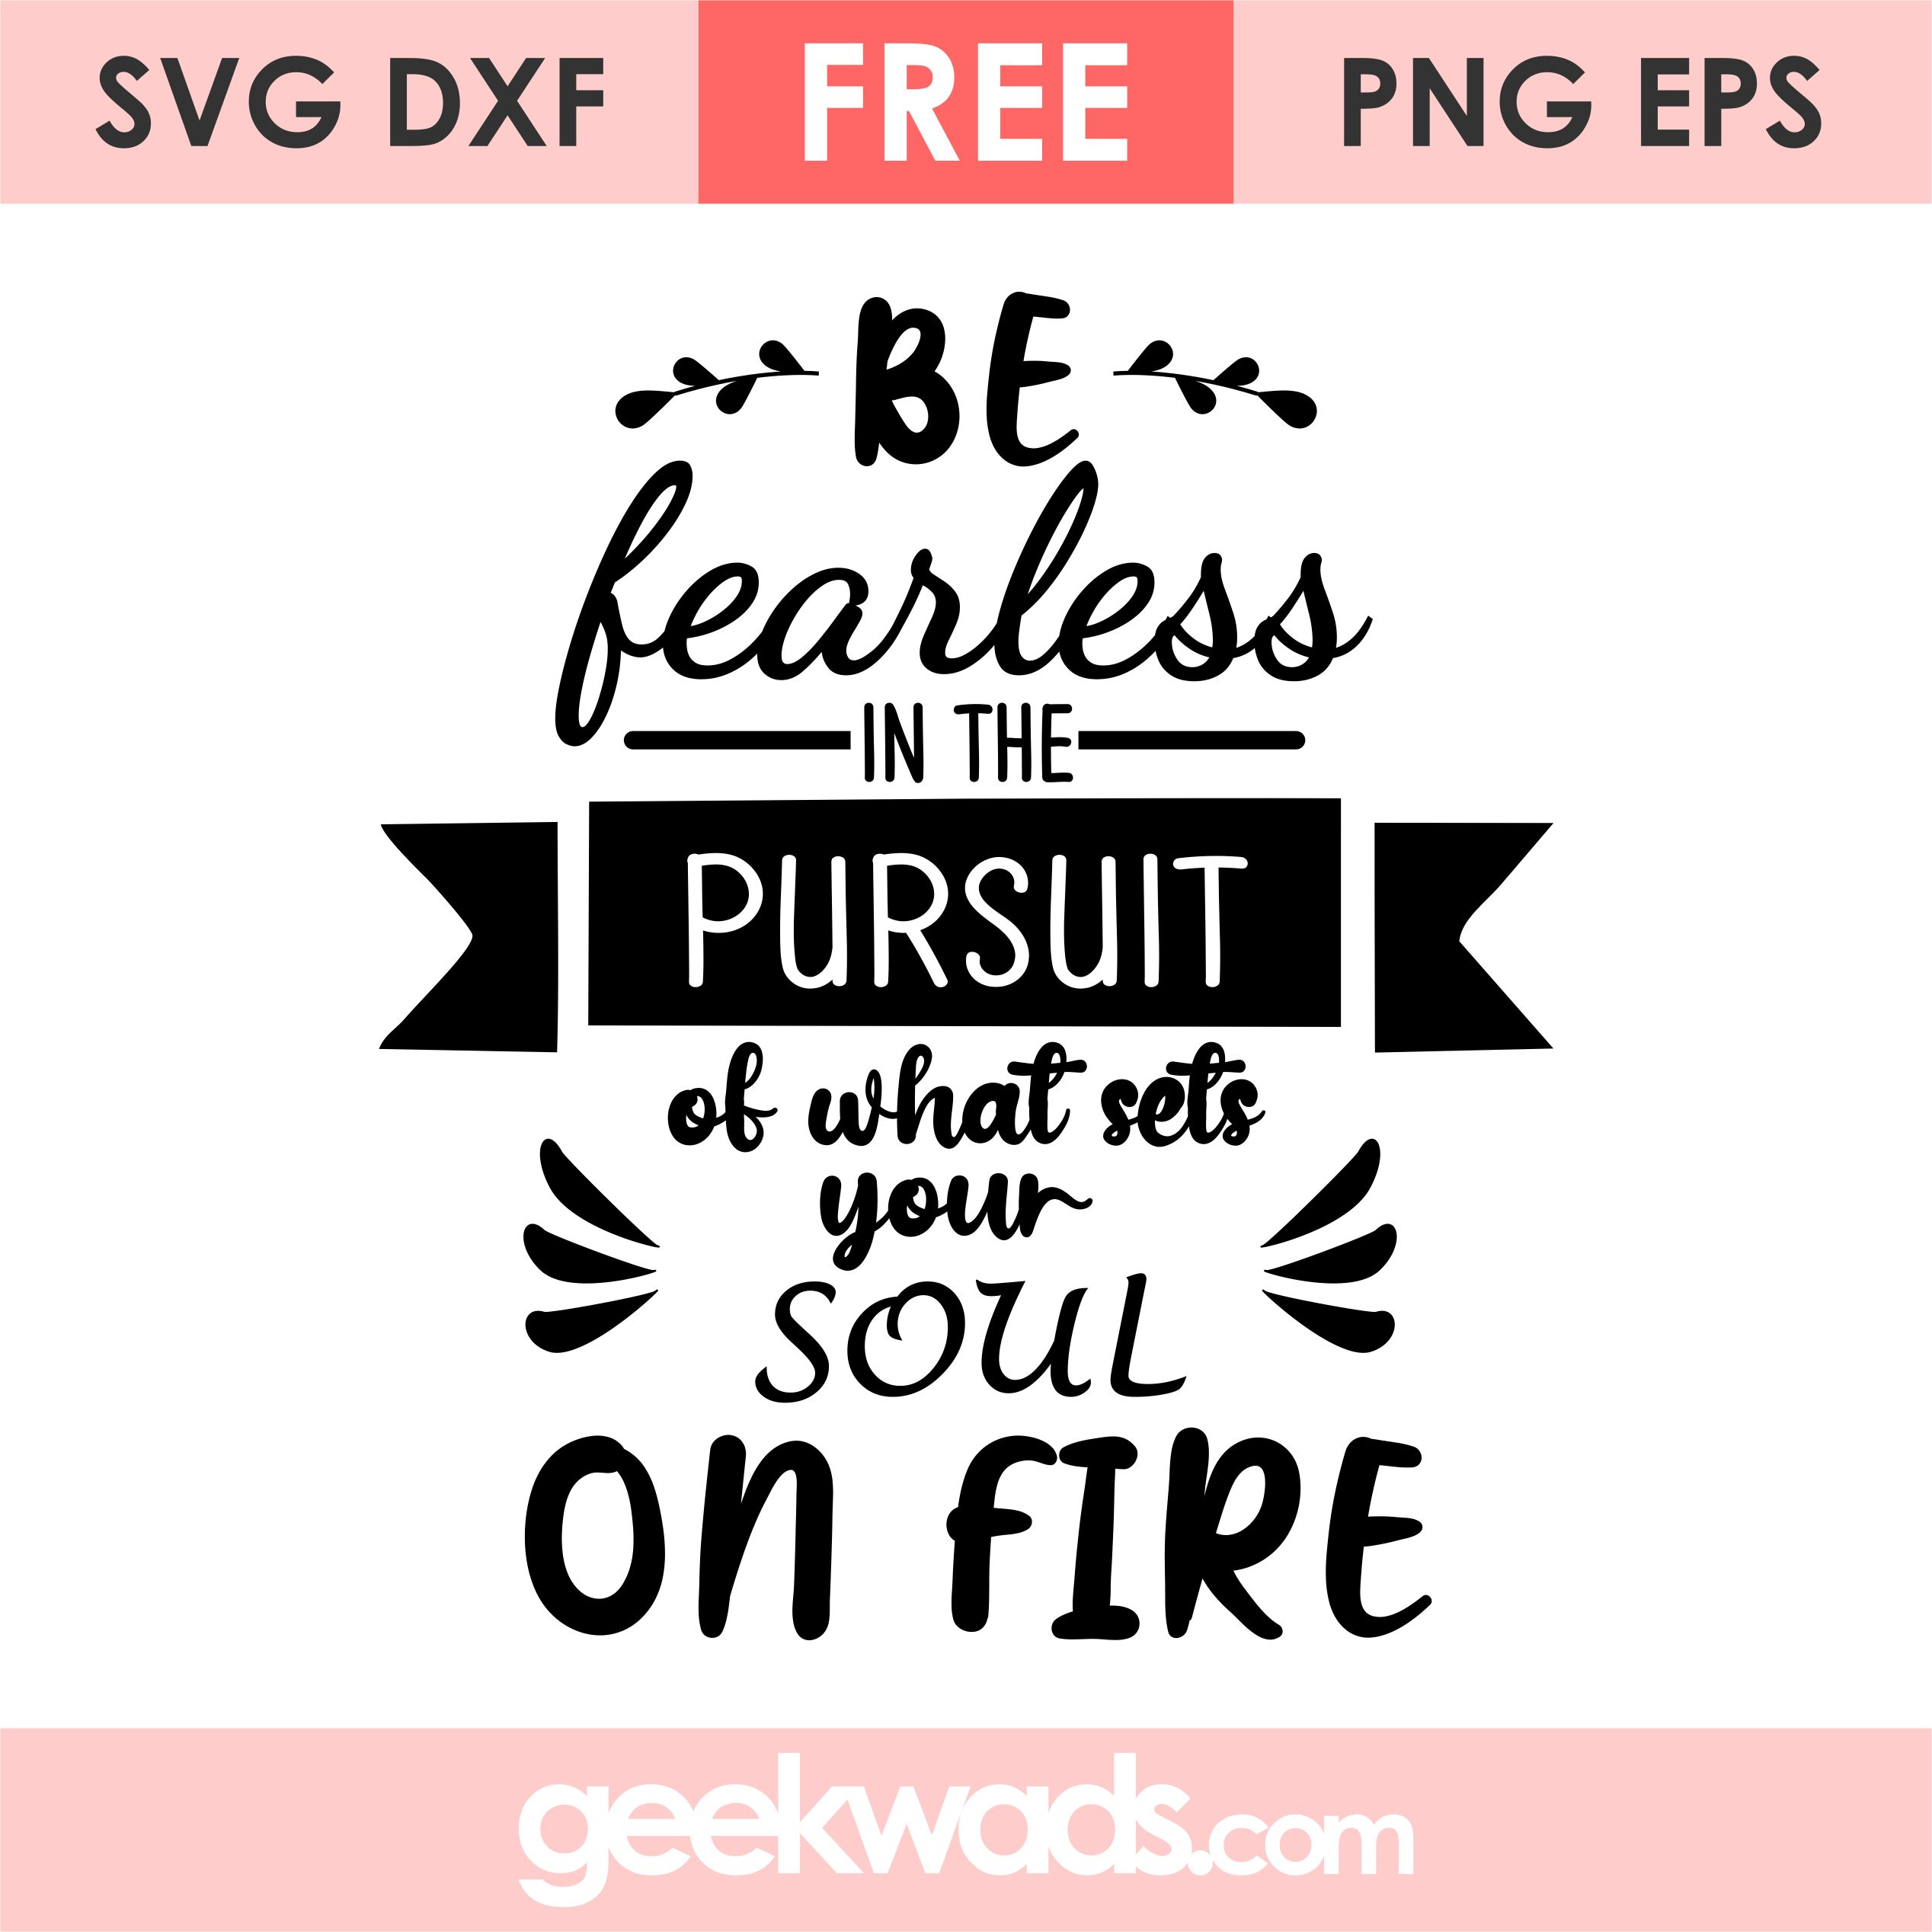 Be Fearless In The Pursuit of what sets Your Soul On Fire svg